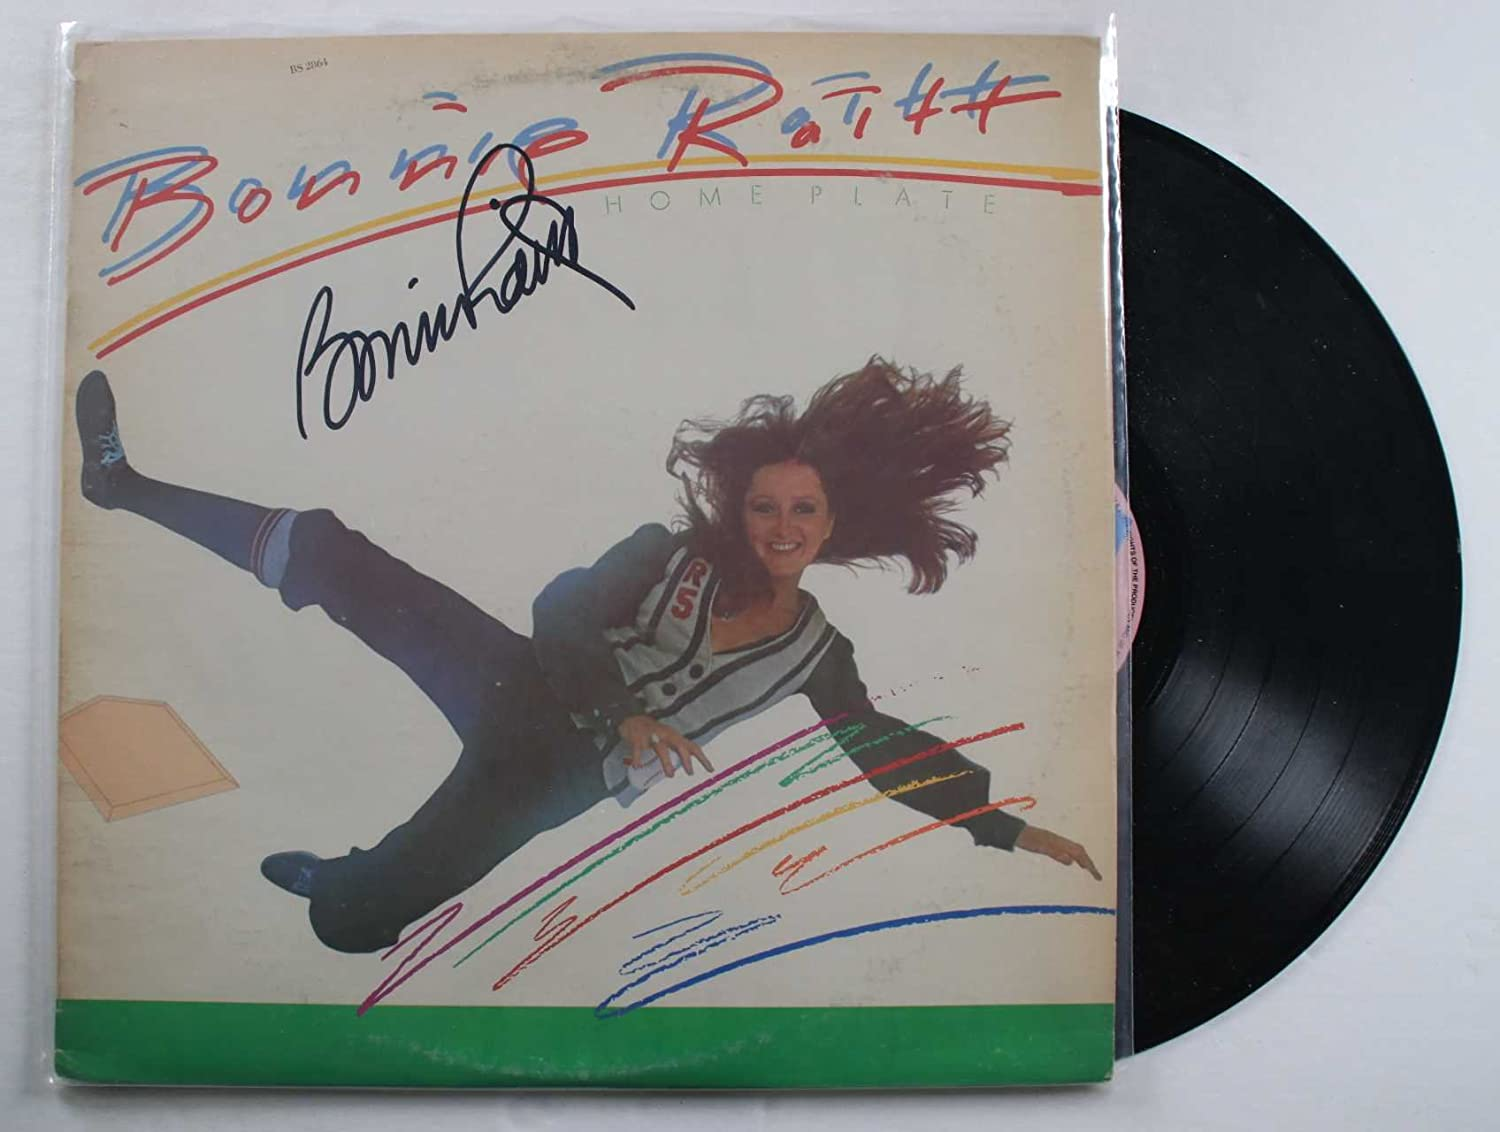 "Bonnie Raitt Signed Autographed ""Home Plate"" Record Album - COA Matching Holograms"